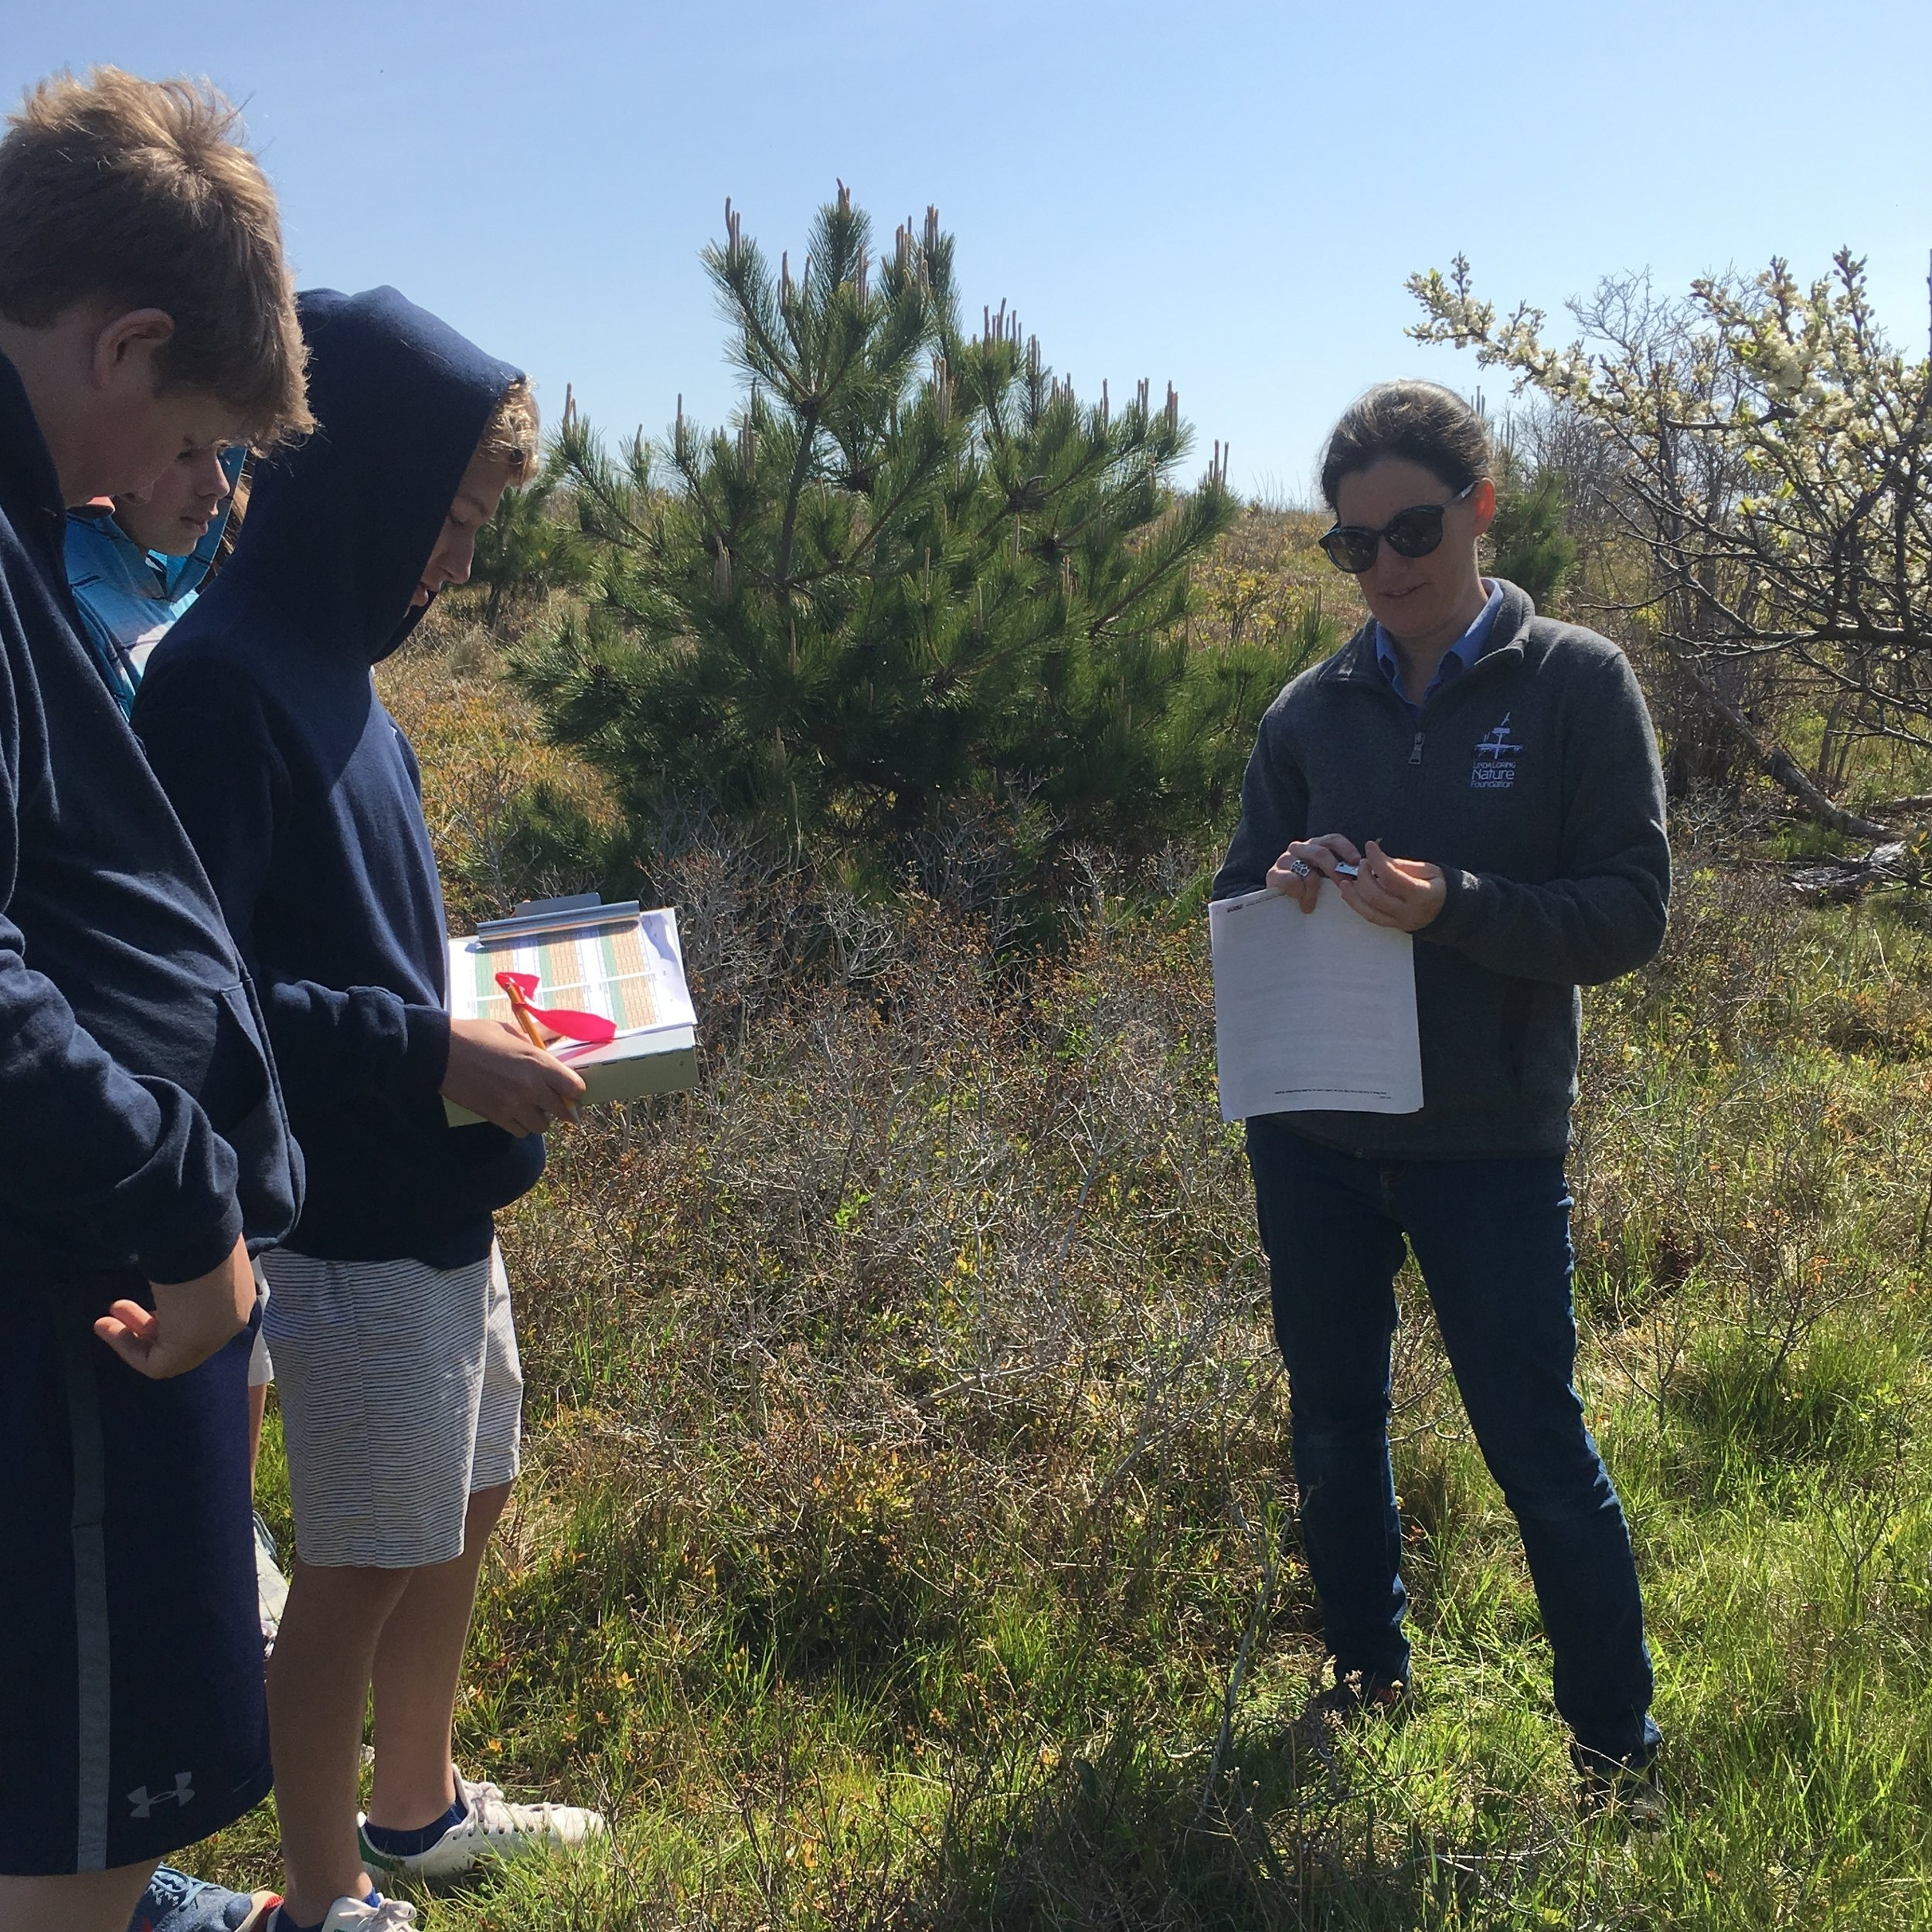 Citizen Science - Want to get involved with research and assist with data collection? We have several opportunities!Explore the Projects →